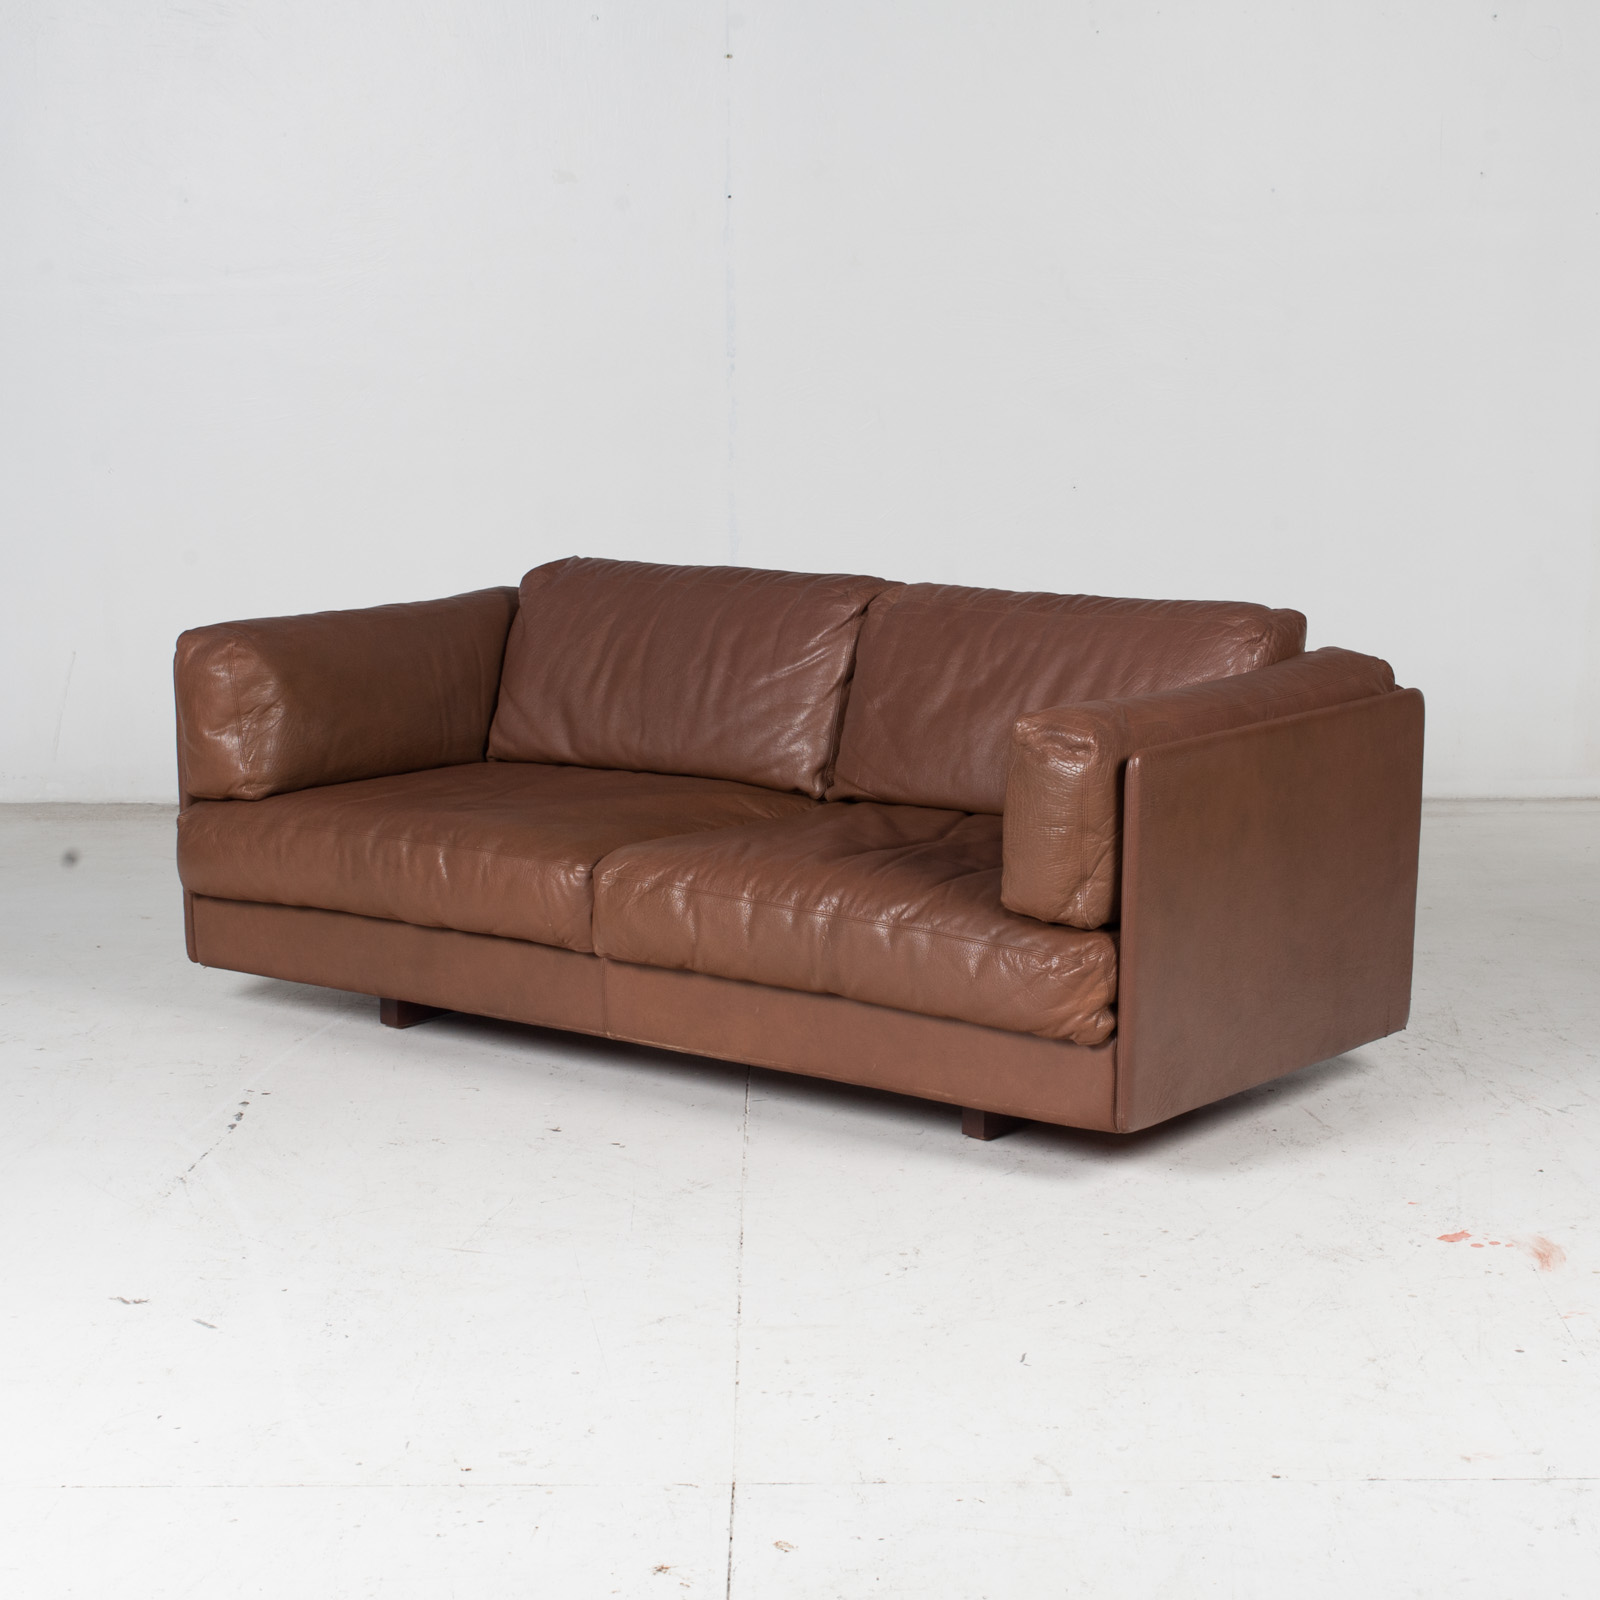 2 Seater Sofa In Brown Leather, 1960s, Switzerland 4